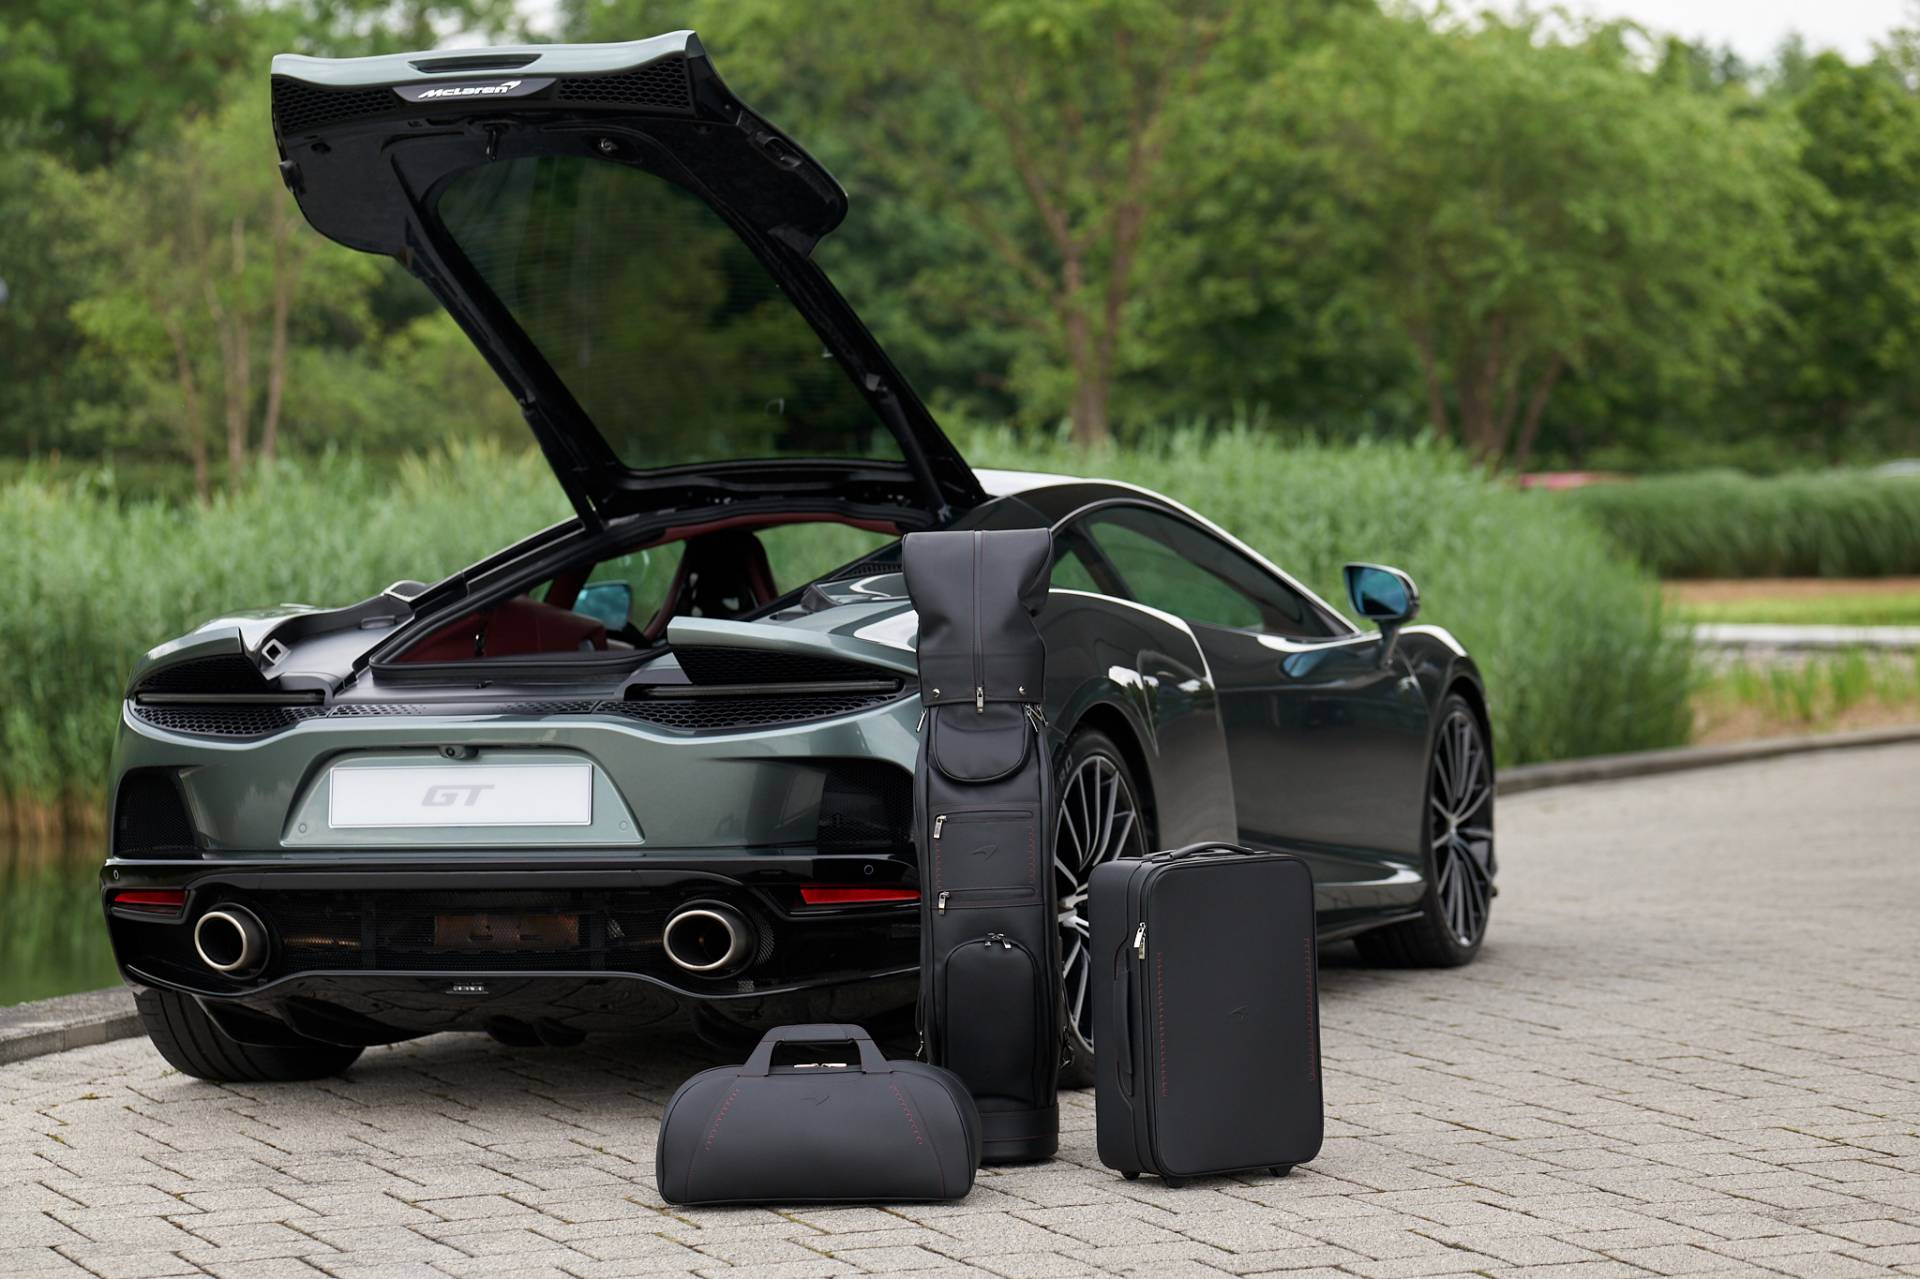 McLaren-GT-Luggage-Set-By-MSO-1